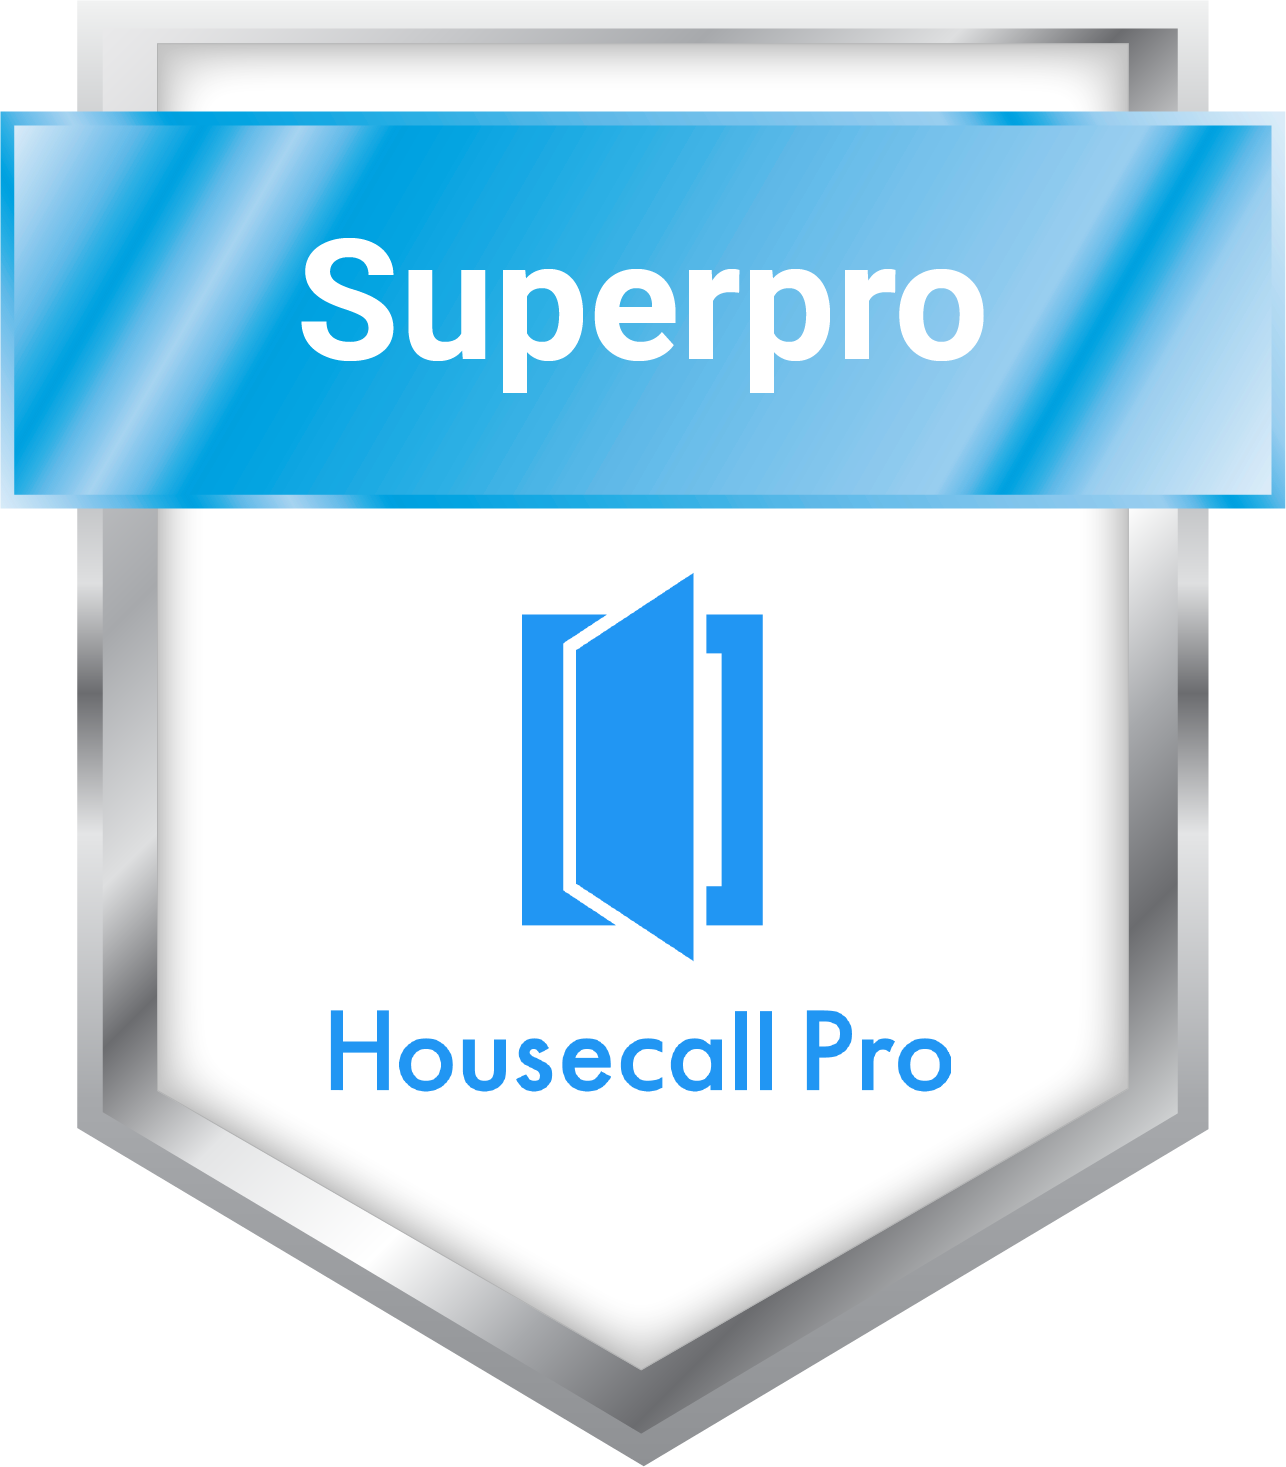 Service detectives is a housecall pro superpro user